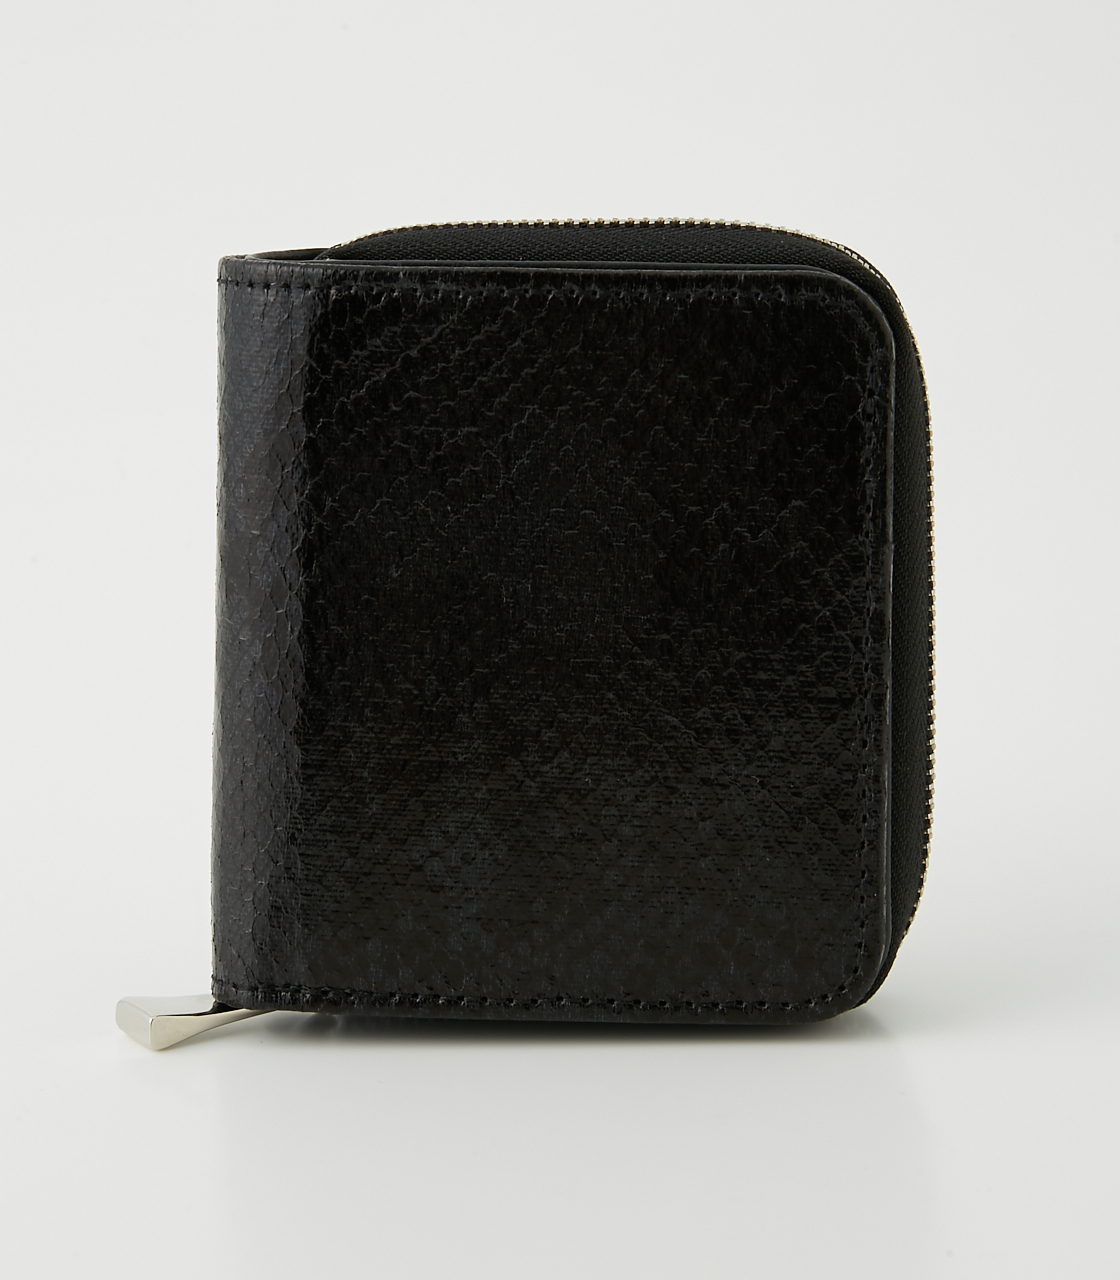 PYTHON COMPACT WALLET/パイソンコンパクトウォレット 詳細画像 柄BLK 1